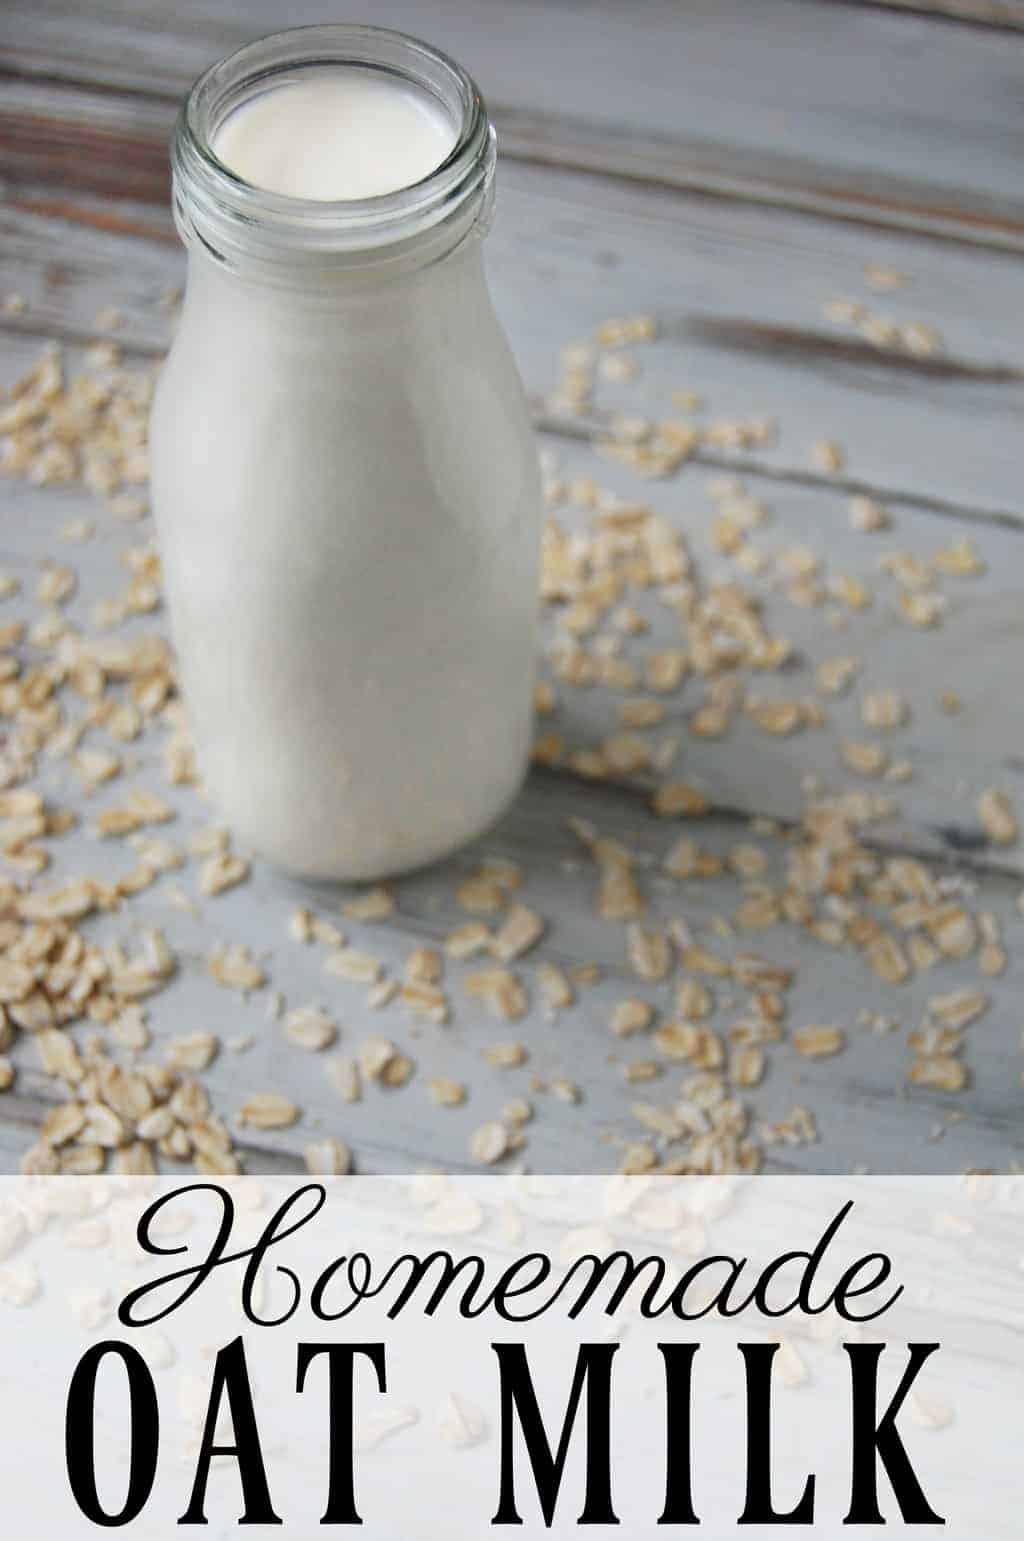 Homemade oat milk is a dairy free, nut free, gluten free milk alternative! Store bought organic oat milk costs about $0.83/cup. Homemade organic oat milk comes to around $0.16/cup. Talk about cheap! #oatmilk #nondairymilk #nutfree #dairyfree